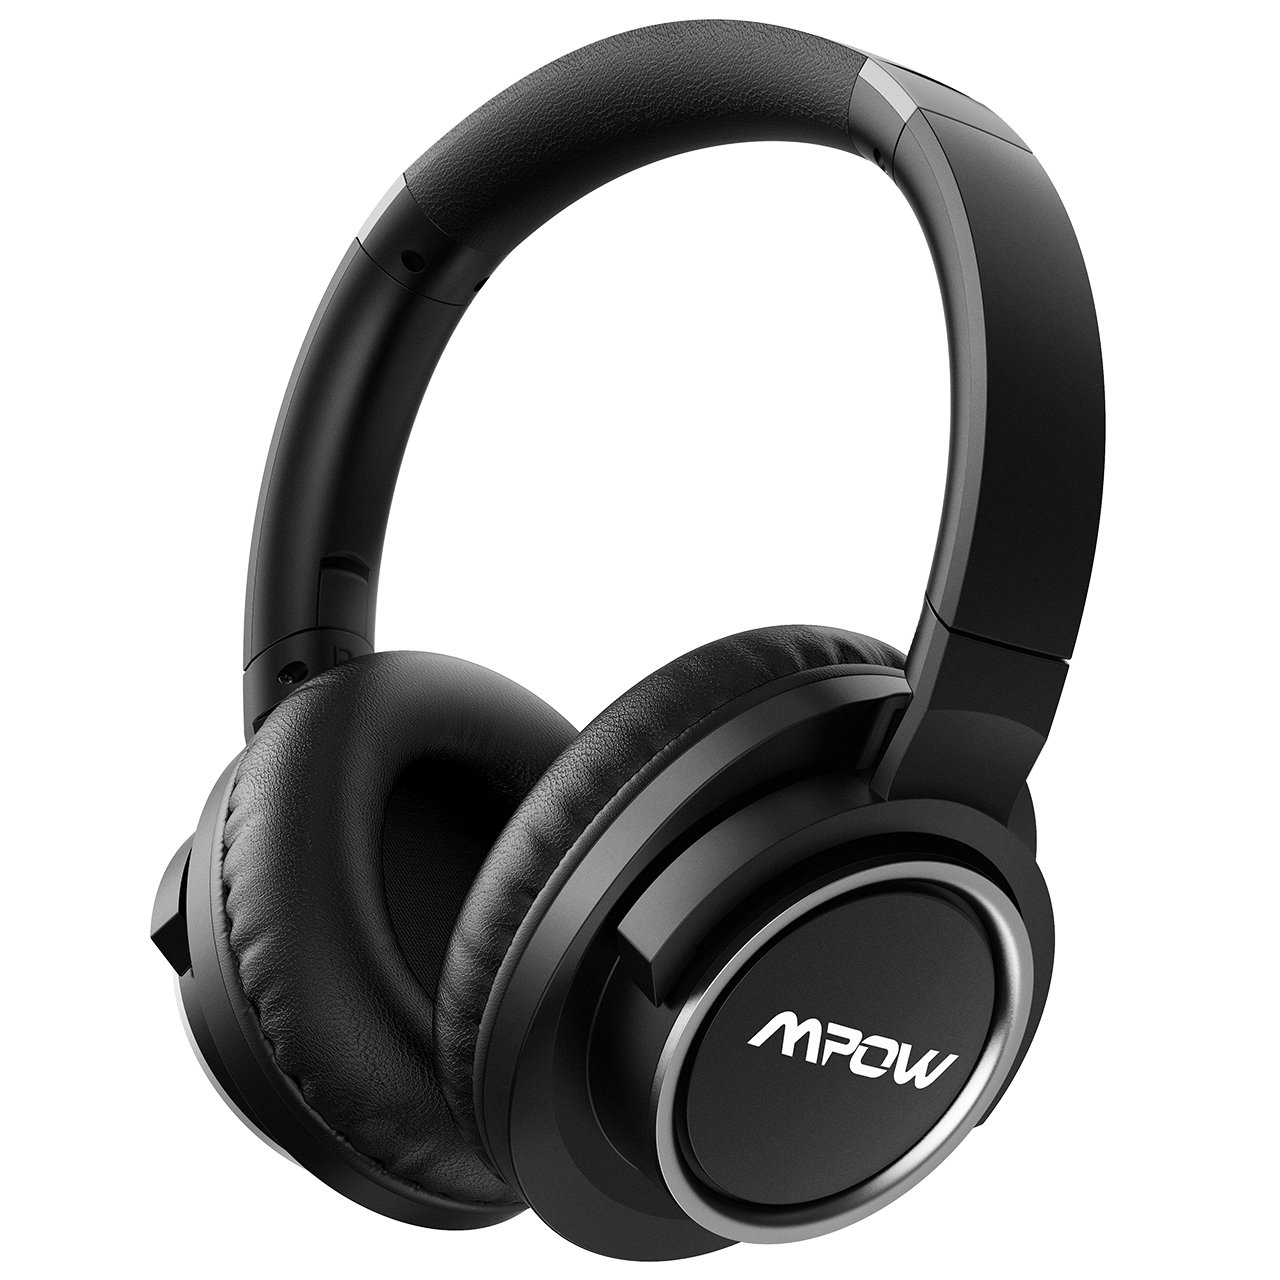 Mpow H3 Active Noise Cancelling Headphones, ANC Over Ear Bluetooth Headphones w/Mic, Better Noise Cancelling Effect 25-50 Hours Playtime, Foldable Wireless Headset Cell Phone/PC